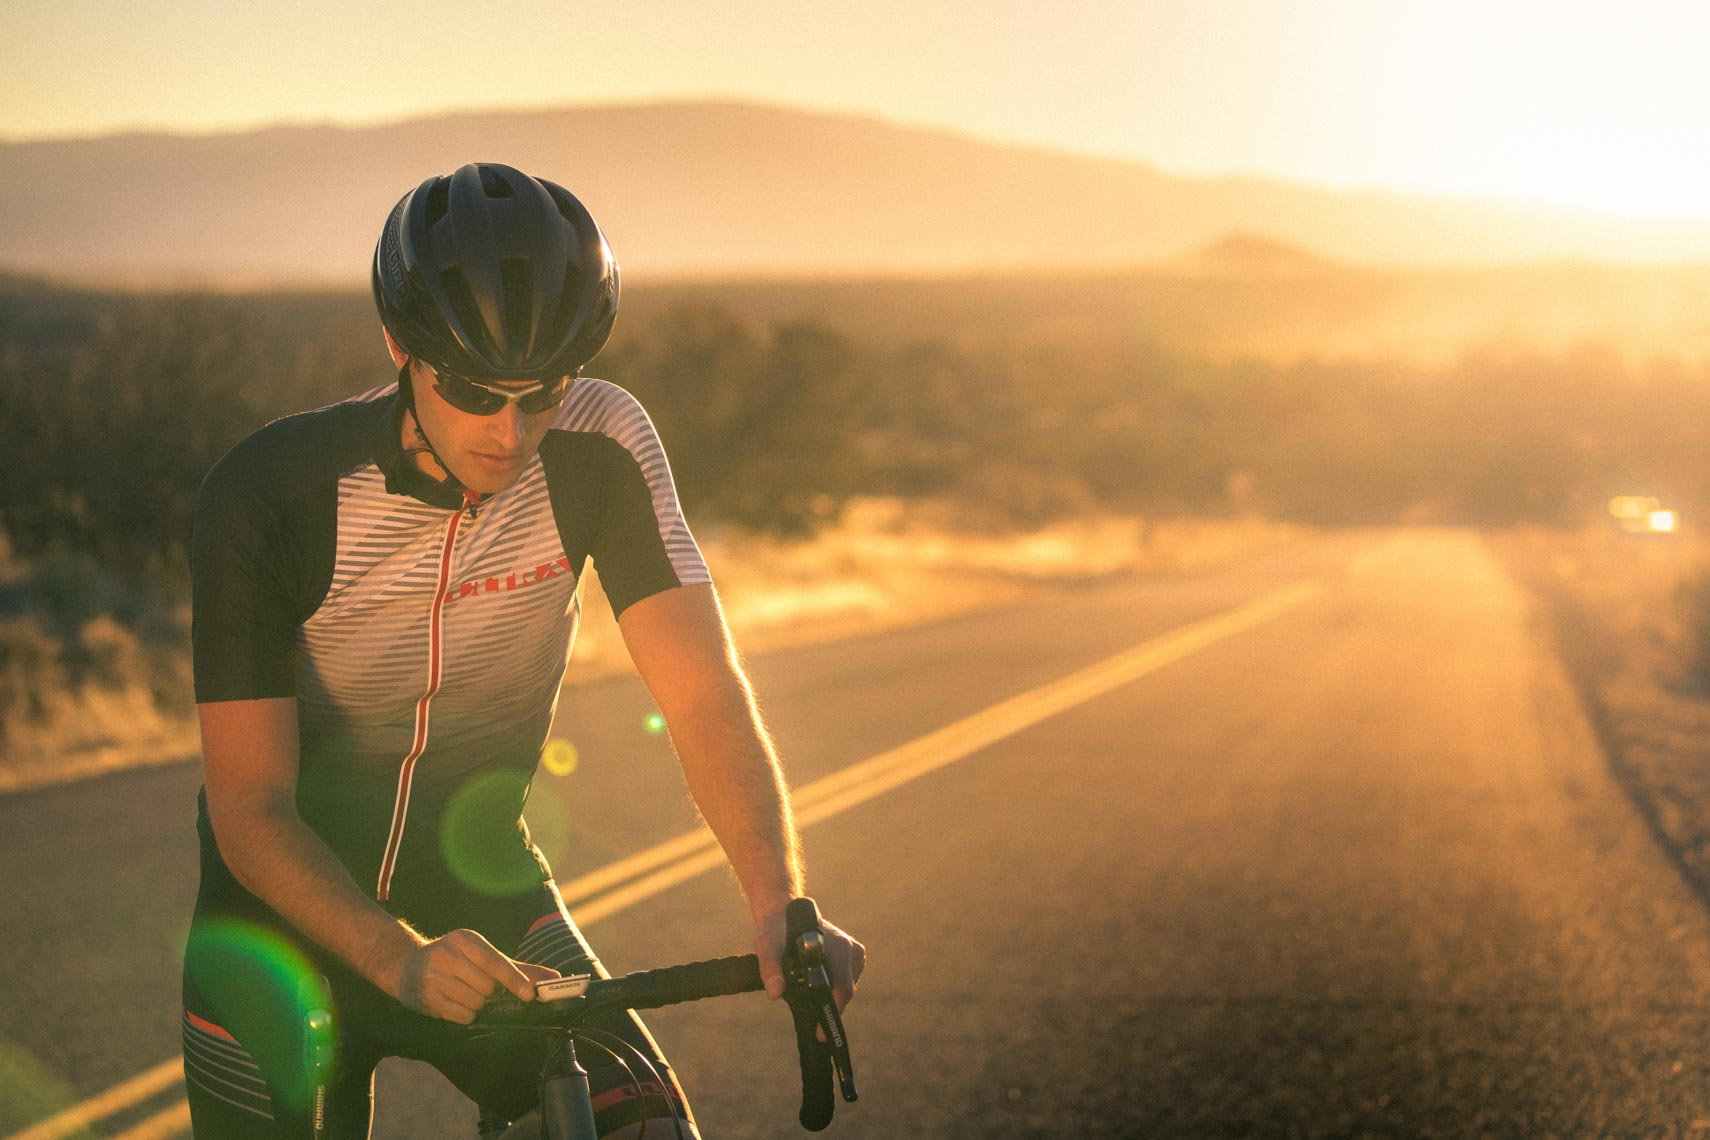 Road cyclist athlete in Sedona Arizona at sunset.